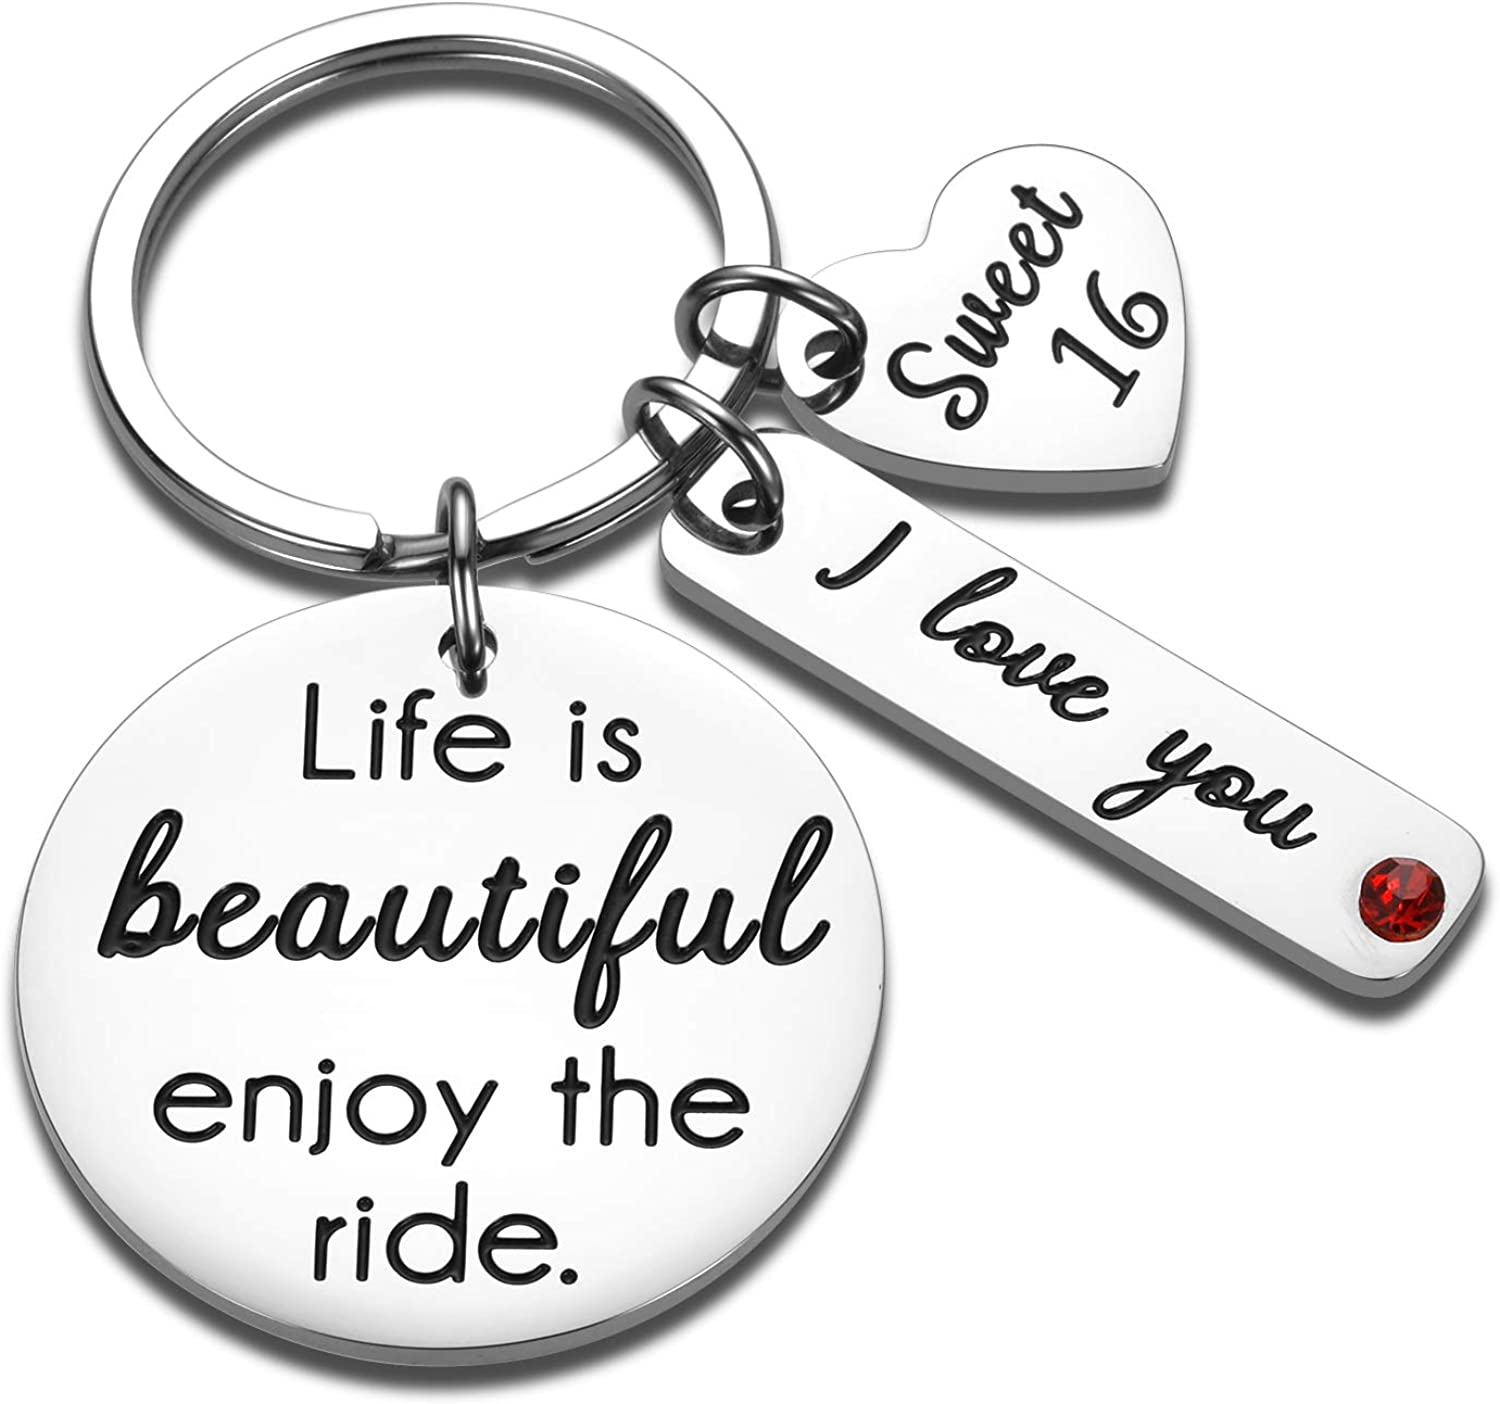 Sweet 16 keychain Gifts for Girls Daughter Son from Dad Mum Life is Beautiful Enjoy the Ride 16th Birthday Gift for Teens Boys Jesus Baptism Keyring for Niece Nephew Grandson Granddaughter Present : Clothing, Shoes & Jewelry